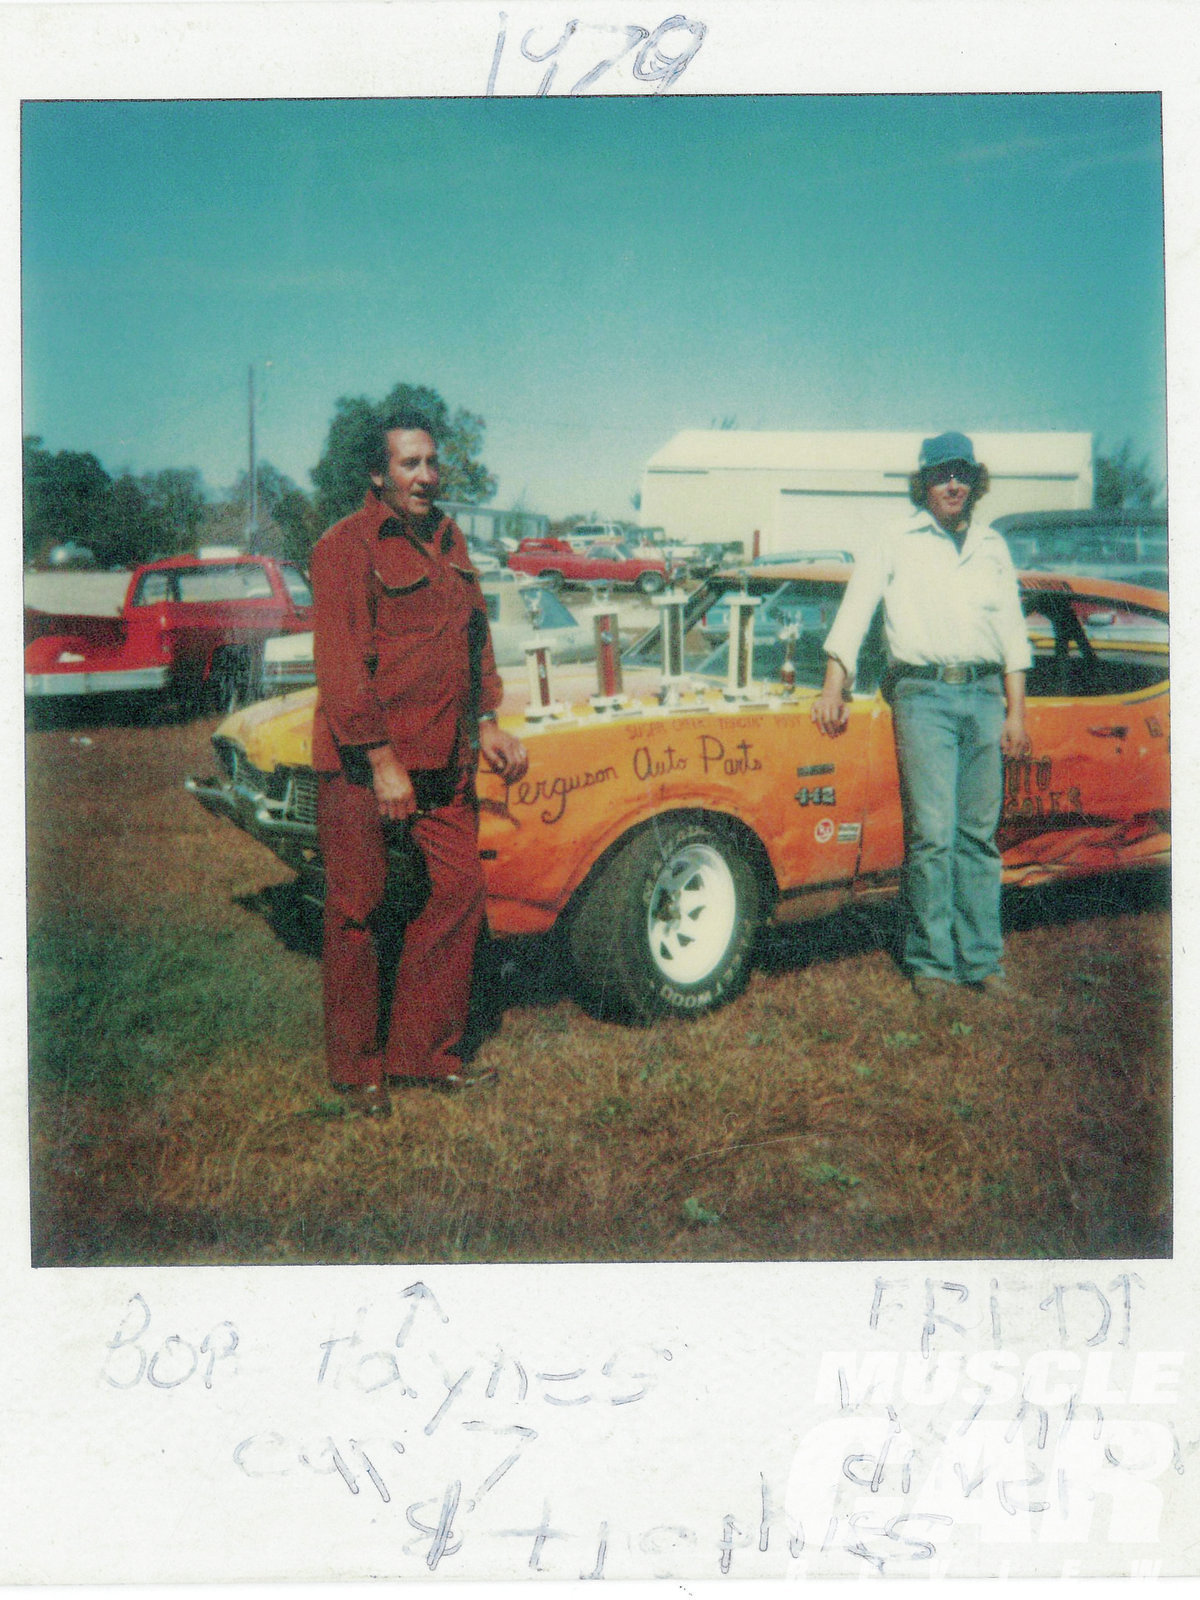 Adam found this old photo of his father, Fred Withrow (right), and his grandfather, Bob Haynes (left), standing in front of the '69 4-4-2 that Fred raced. Adam plans to build his '69 4-4-2 rare find into a tribute to his father's old circle-track race car, right down to the color and decals.